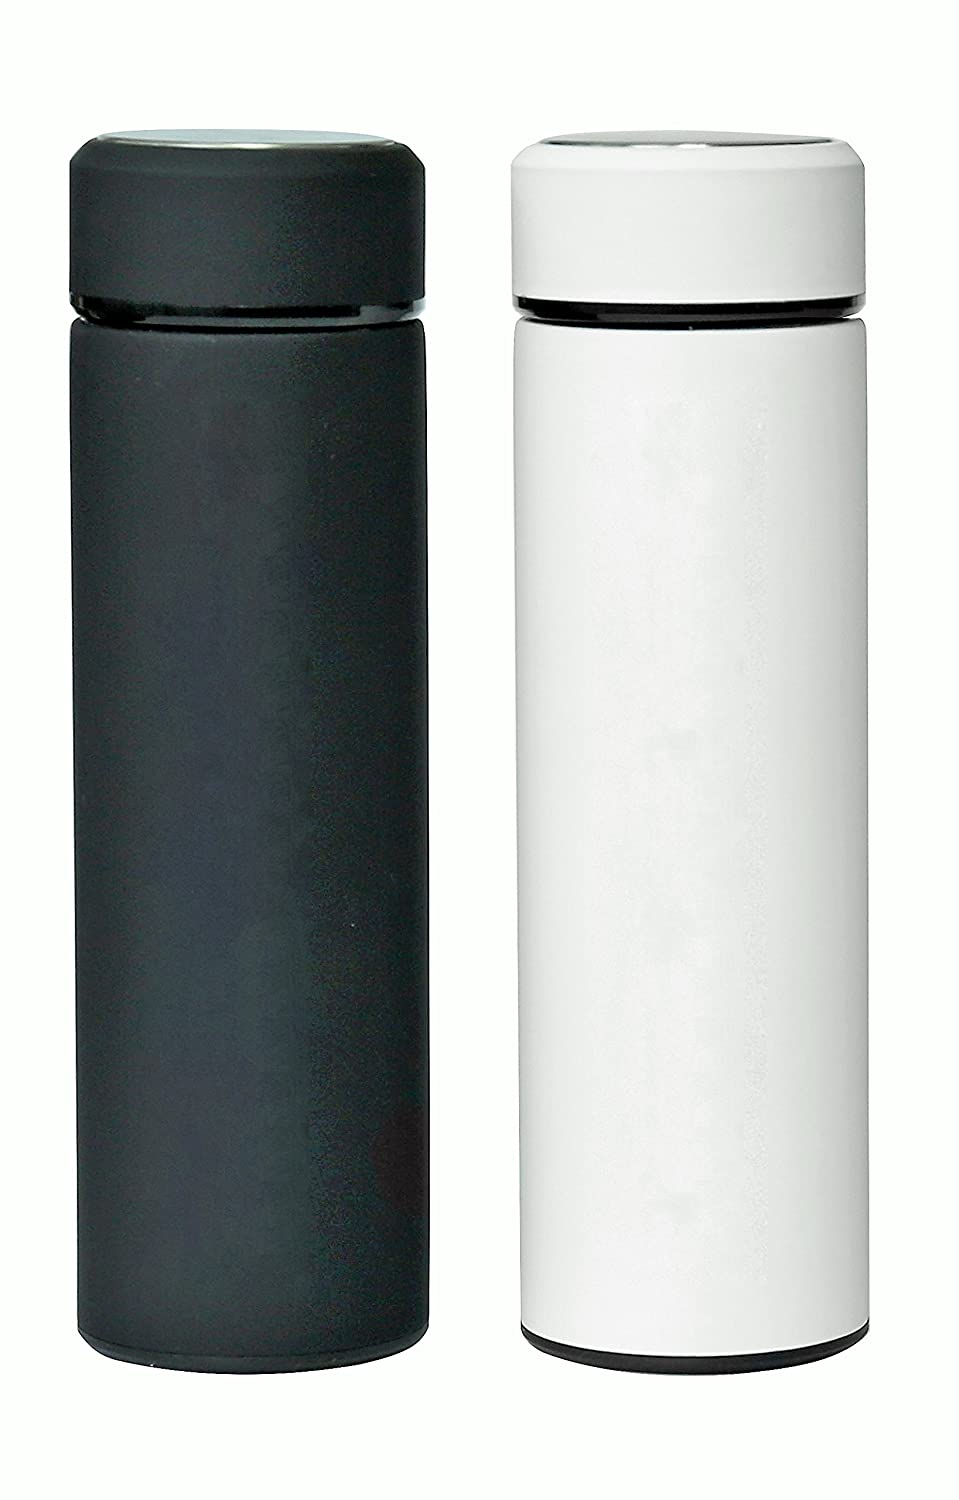 Stainless Steel Water Bottle Tumblers: BPA Free, Vacuum Insulated Travel Mug with Lid and Removable Fruit and Tea Filter for Hot or Cold Beverages - 17 oz. Infuser Bottles Set of 2